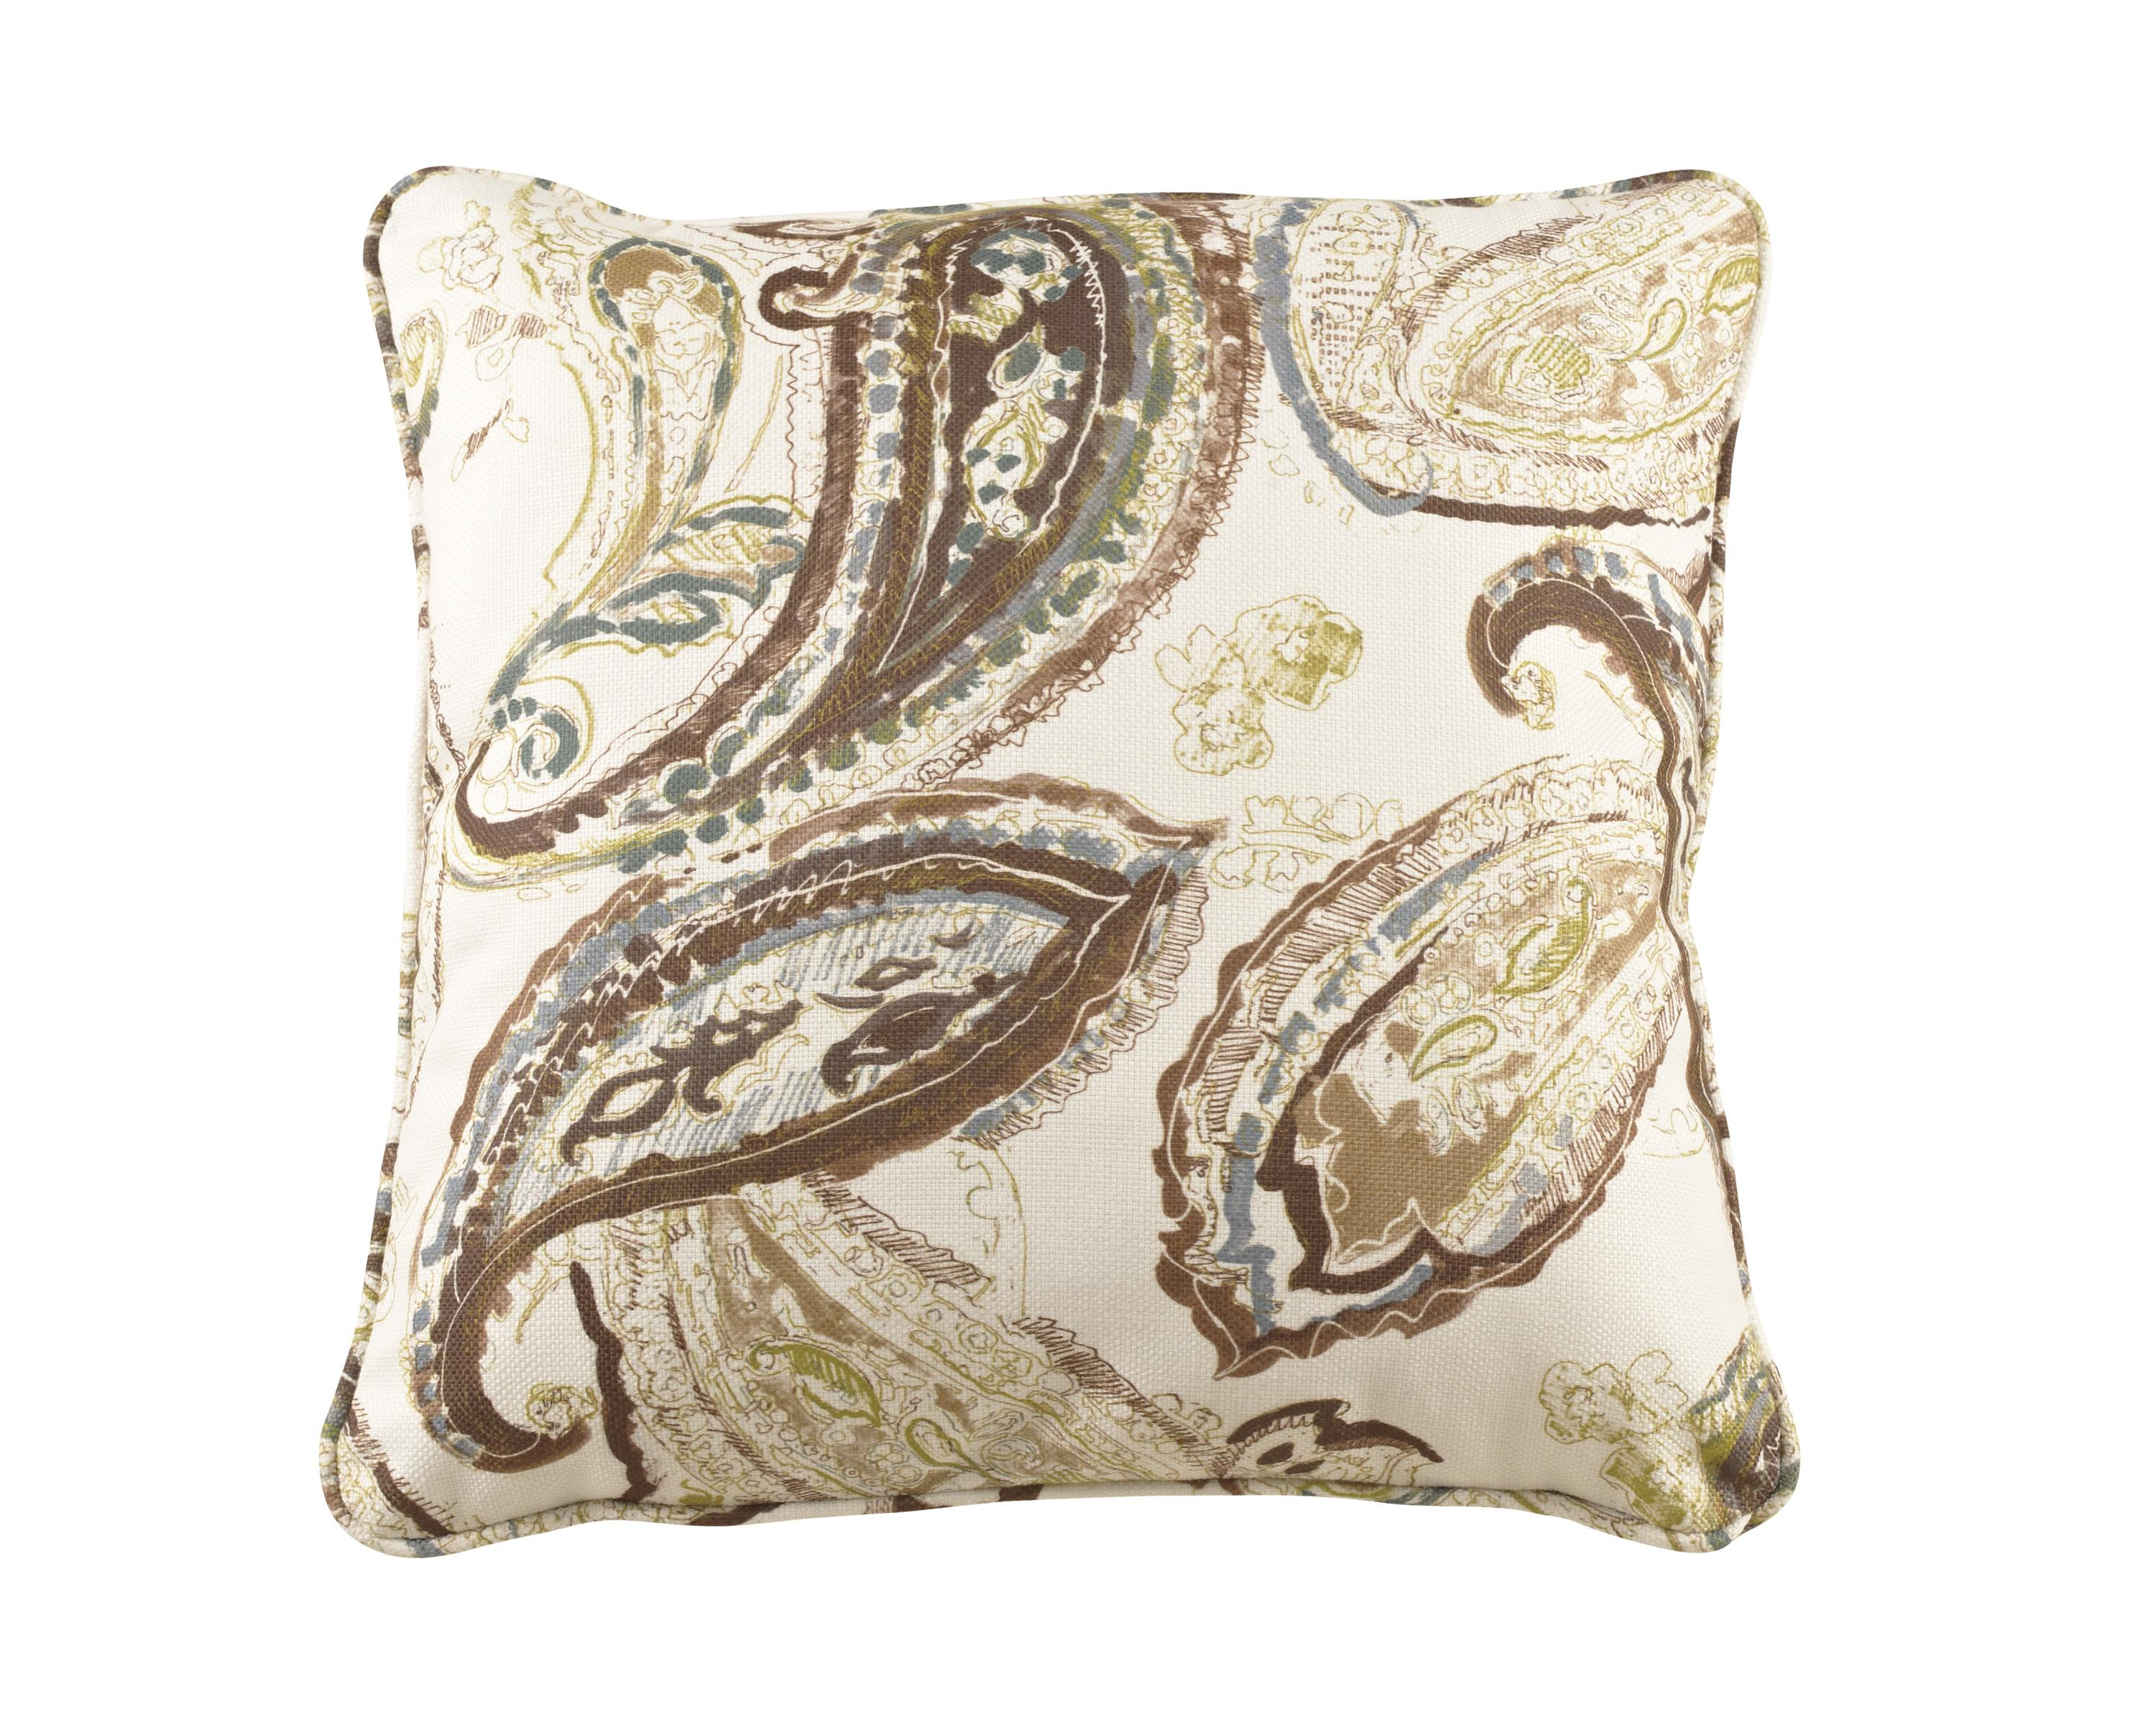 Signature Design by Ashley Pillows Estin - Spring Pillow - Item Number: A1000203P